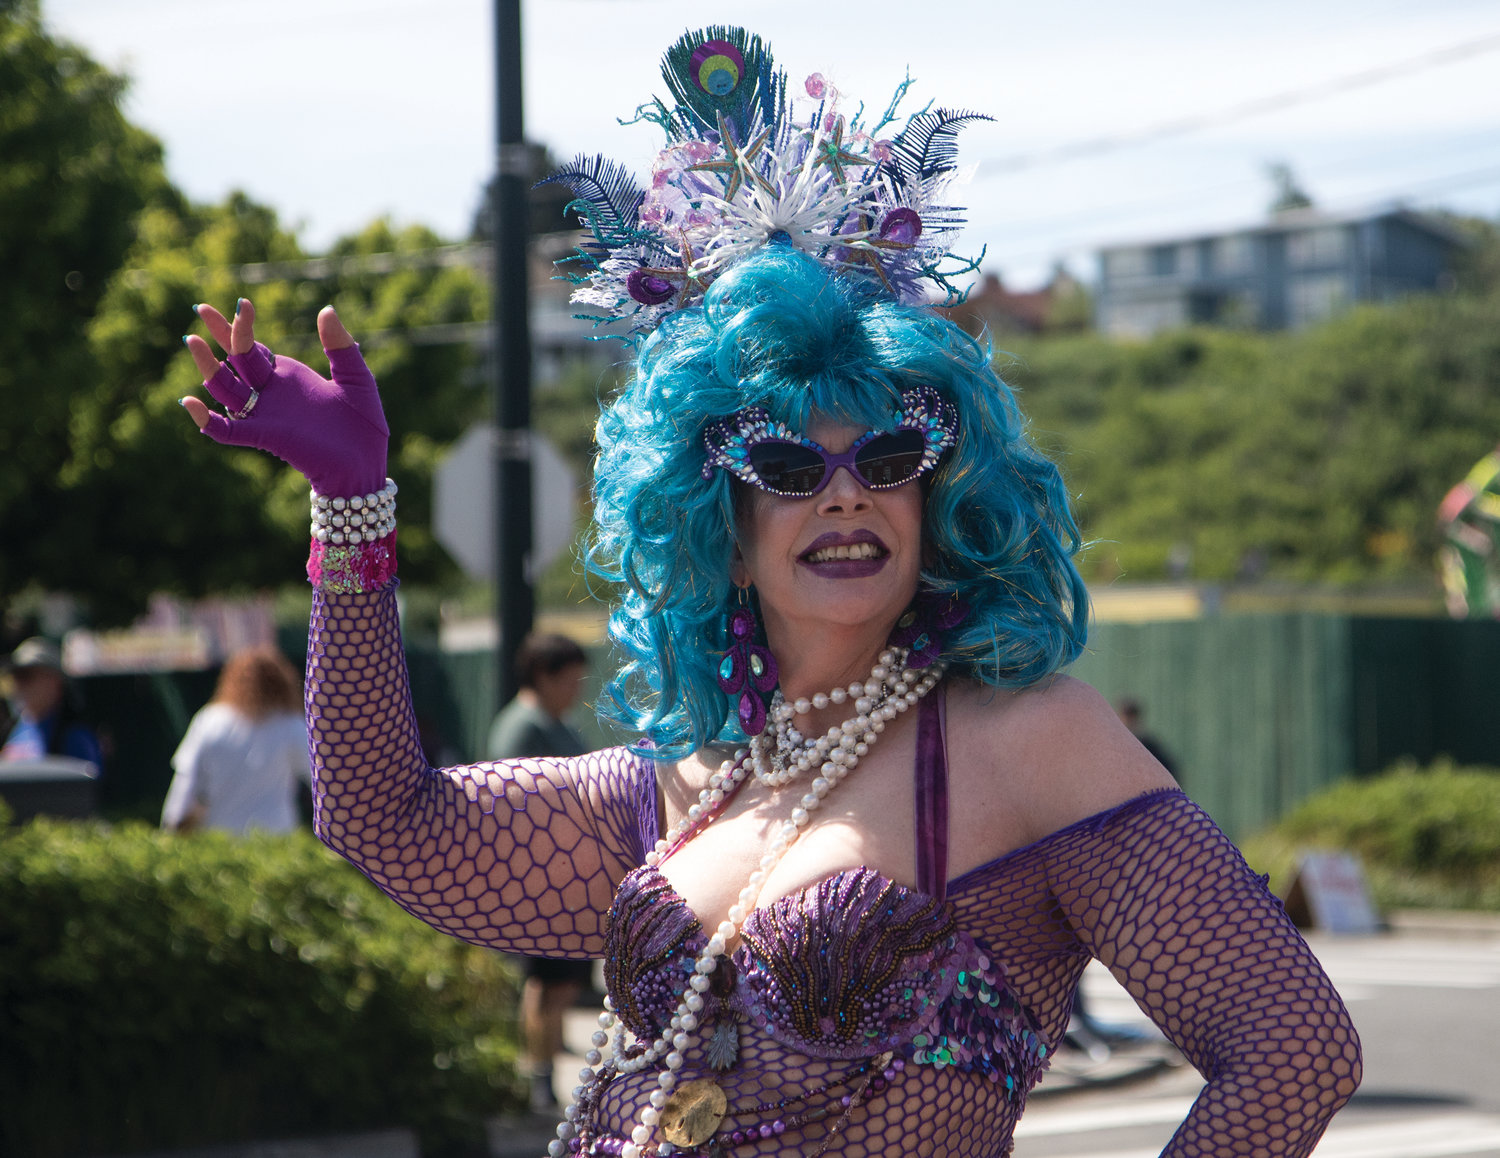 Lyn Hersey, dressed in a Mermaid Chic look, dances down the street with members of the International Pussy Alliance.